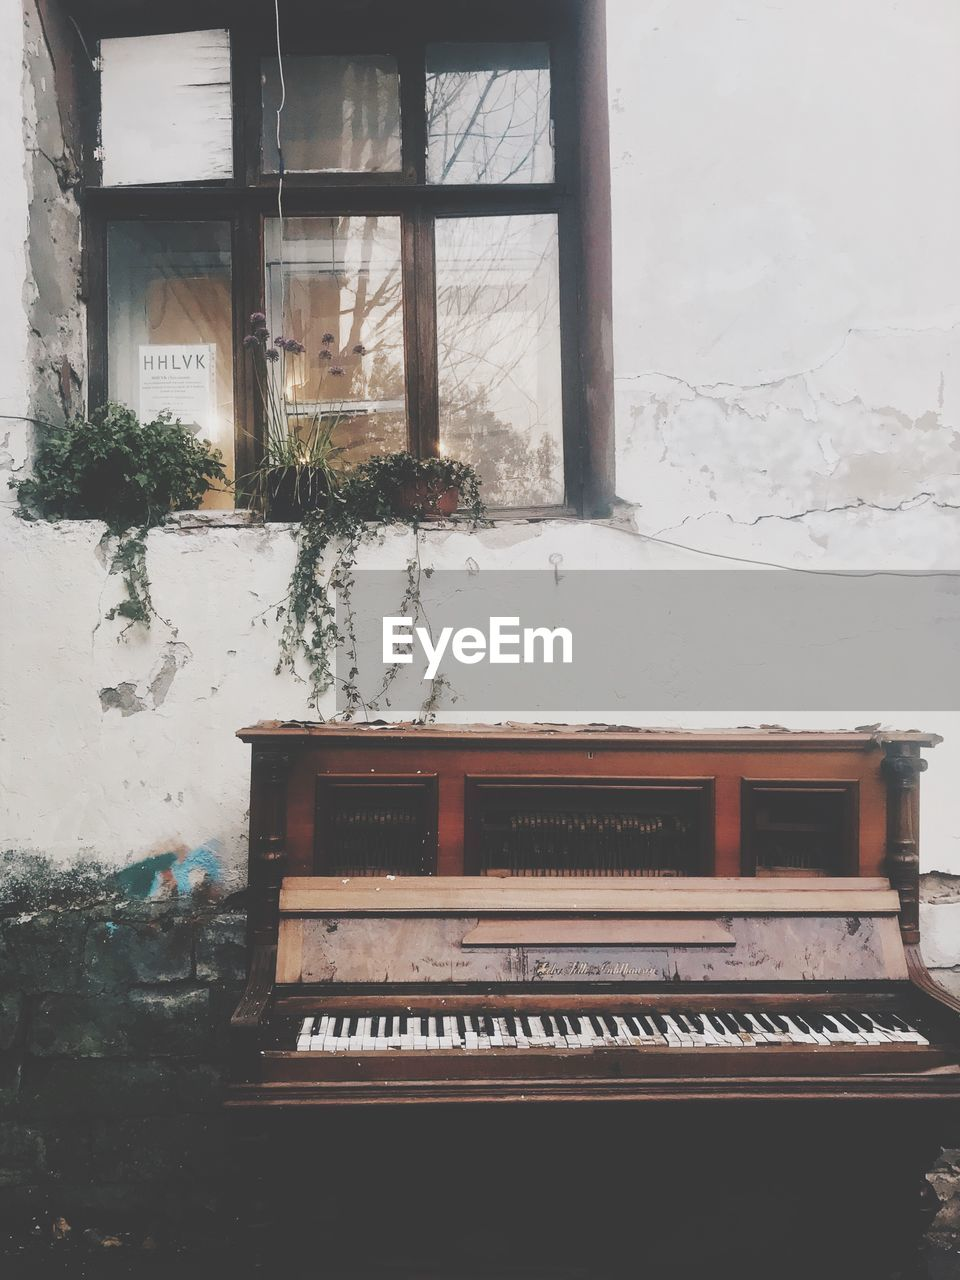 window, musical equipment, piano, musical instrument, no people, music, indoors, day, old, architecture, glass - material, nature, built structure, arts culture and entertainment, wood - material, plant, text, communication, building, piano key, keyboard instrument